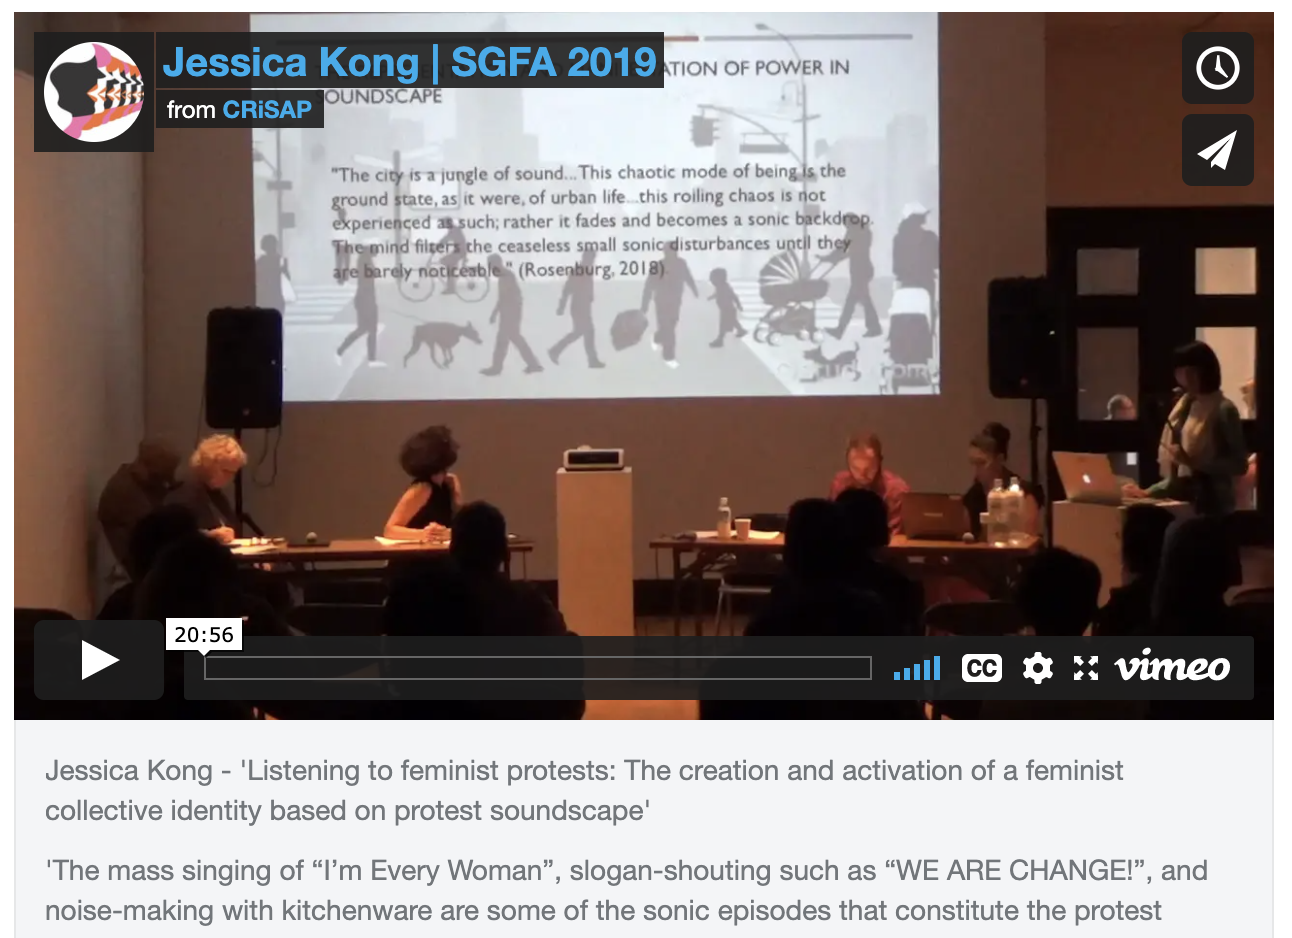 vimeo screen shot of Jessica Kong - 'Listening to feminist protests'